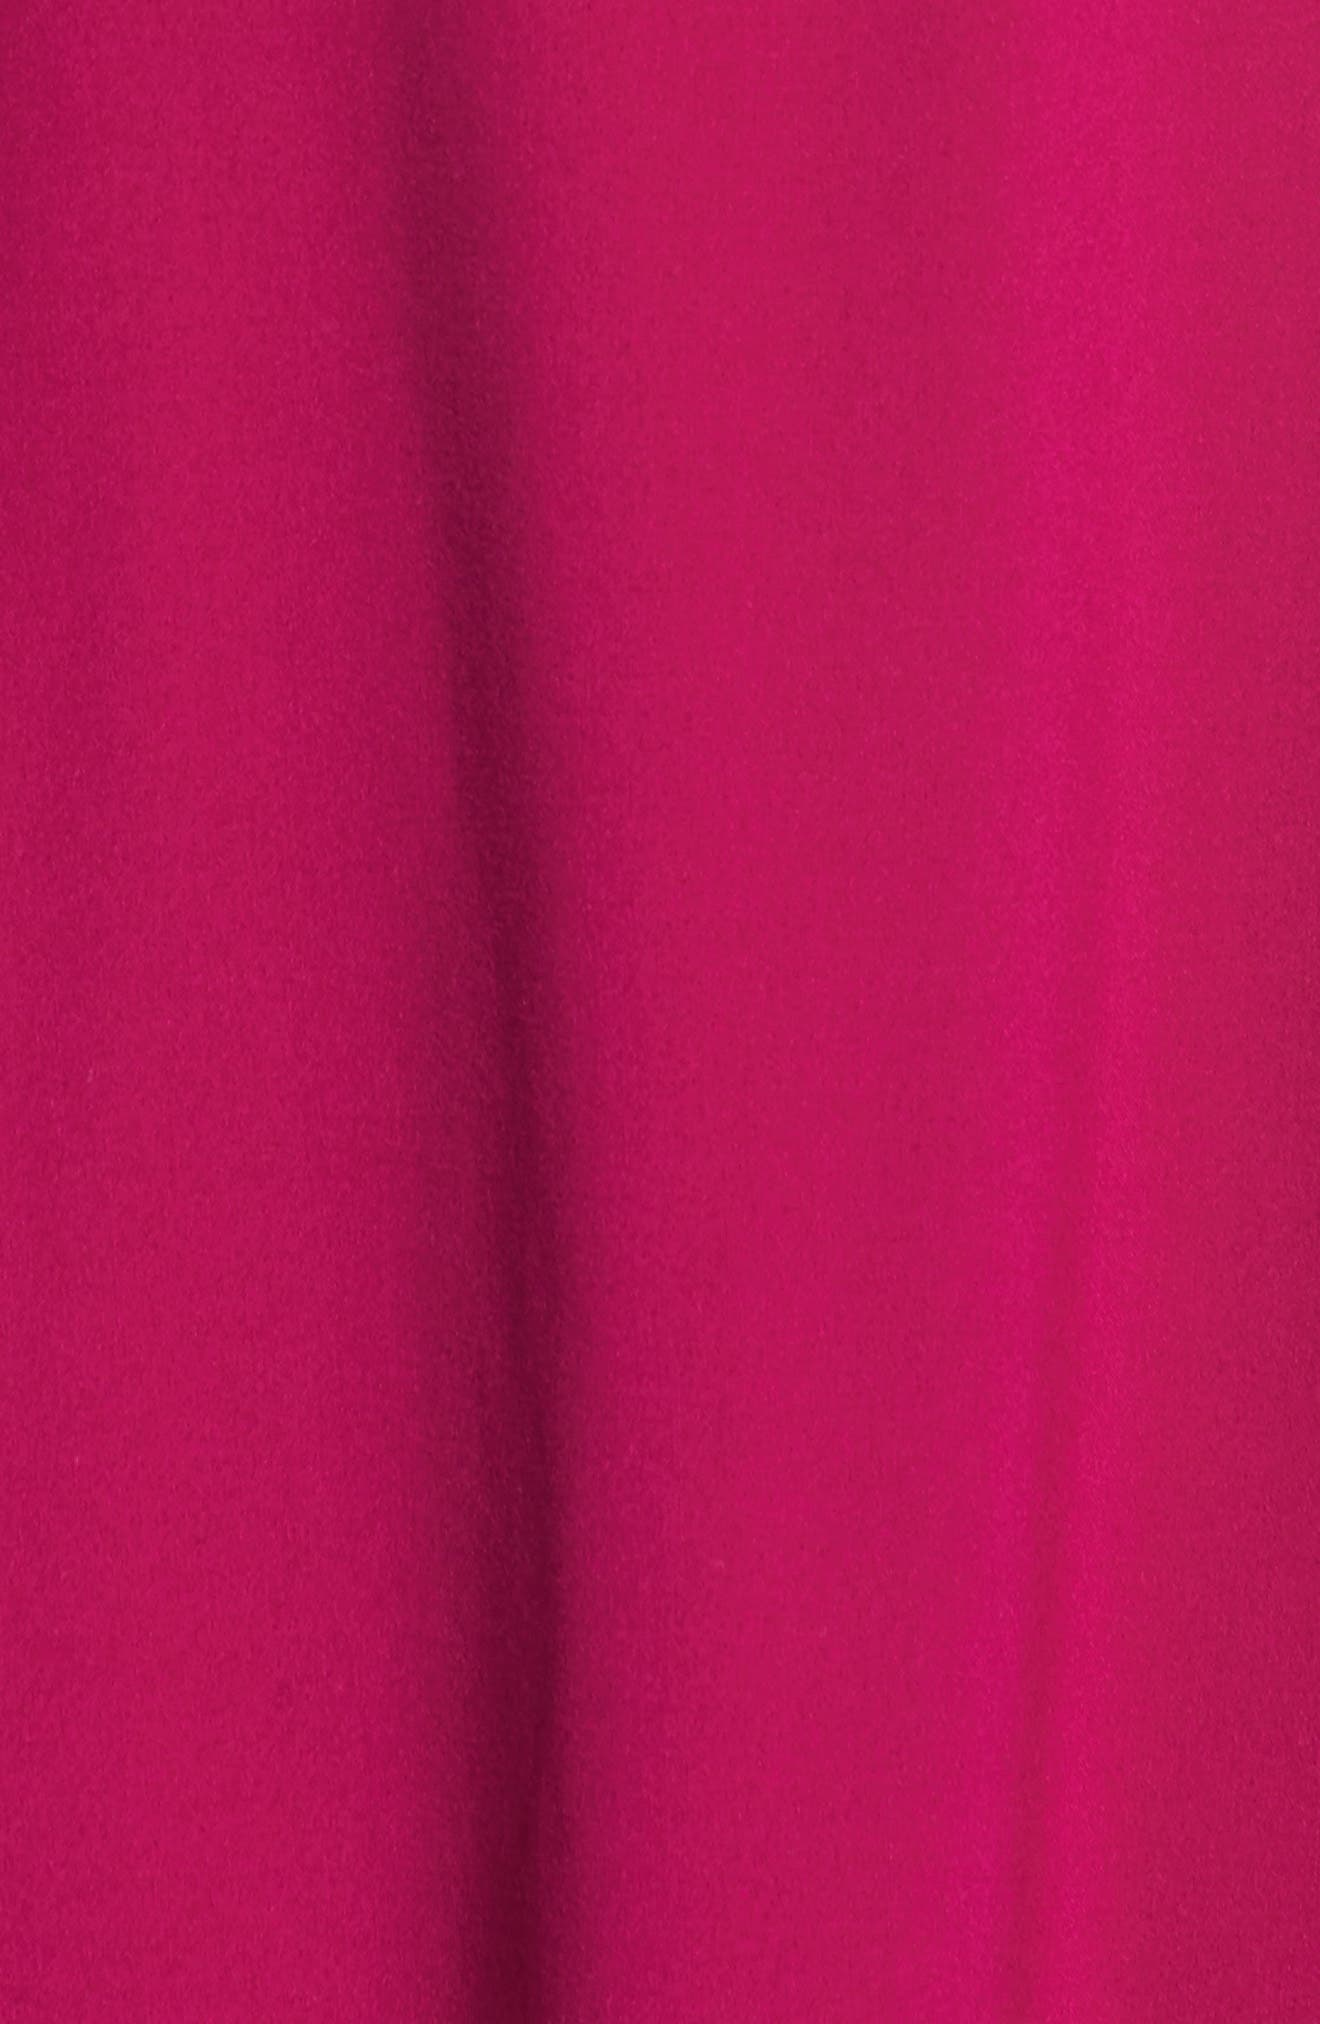 Mock Choker Neck A-Line Dress,                             Alternate thumbnail 5, color,                             Magenta